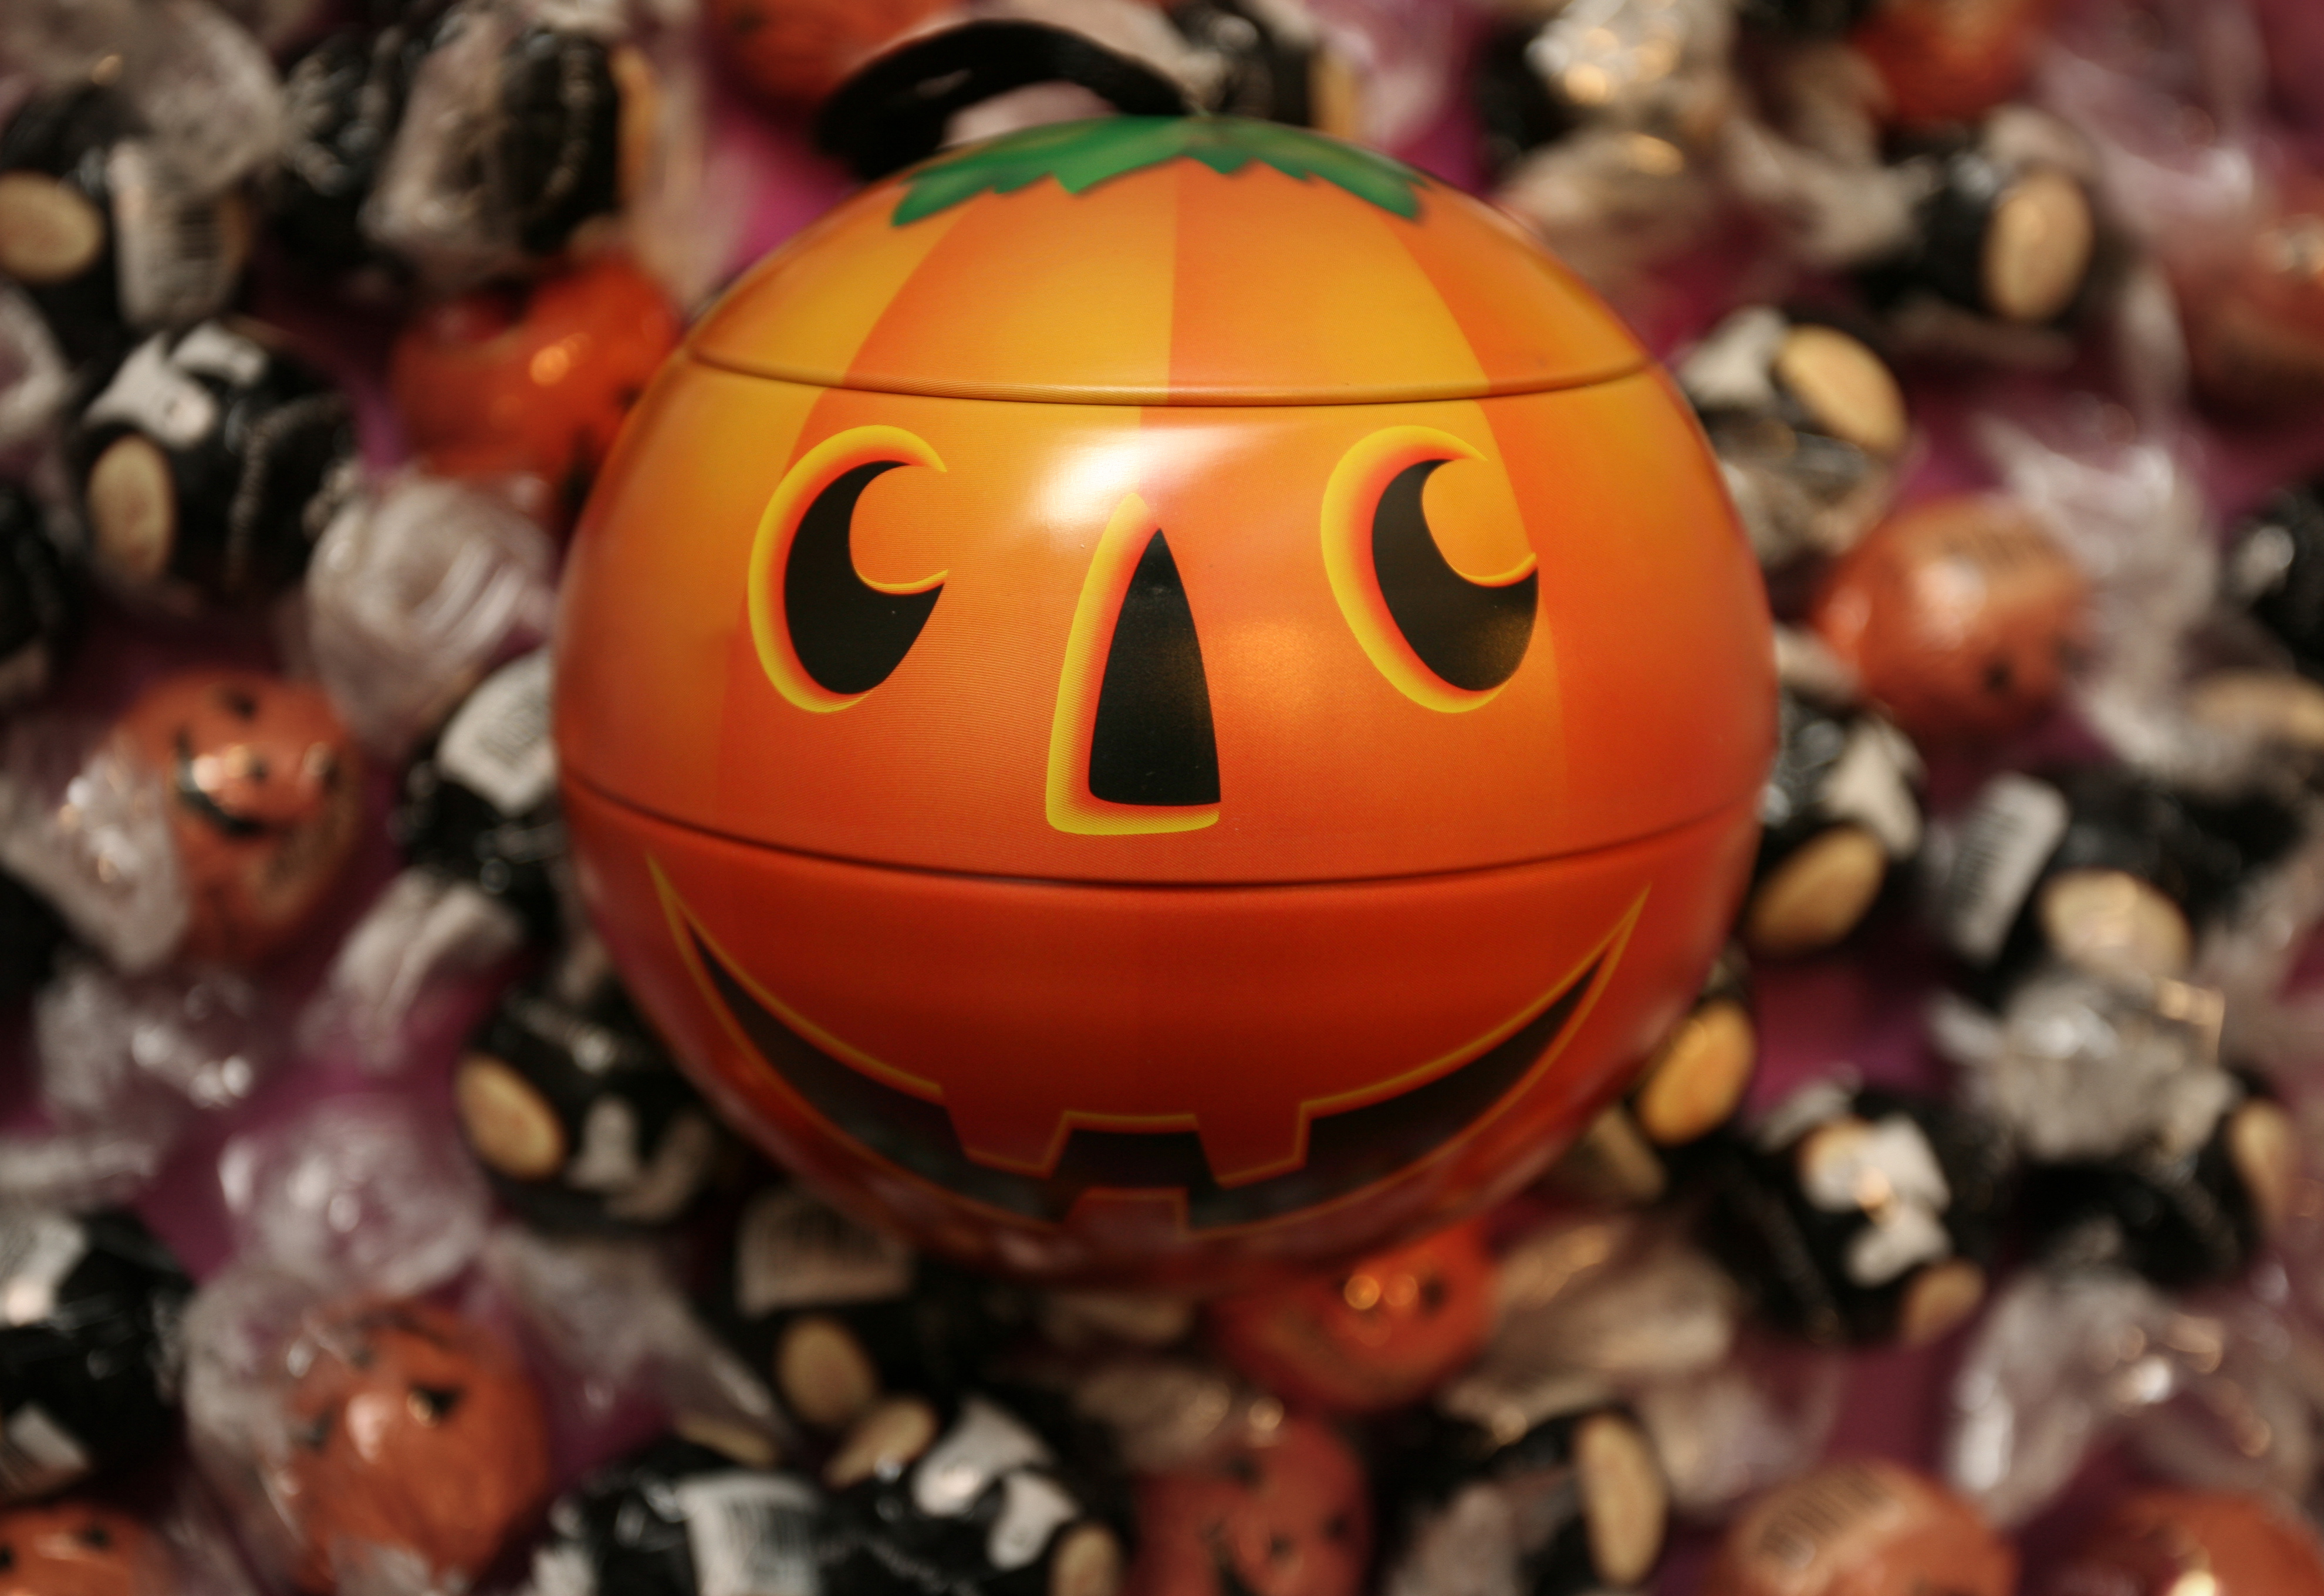 Top 10 Tips for Allergy Safe Trick or Treating